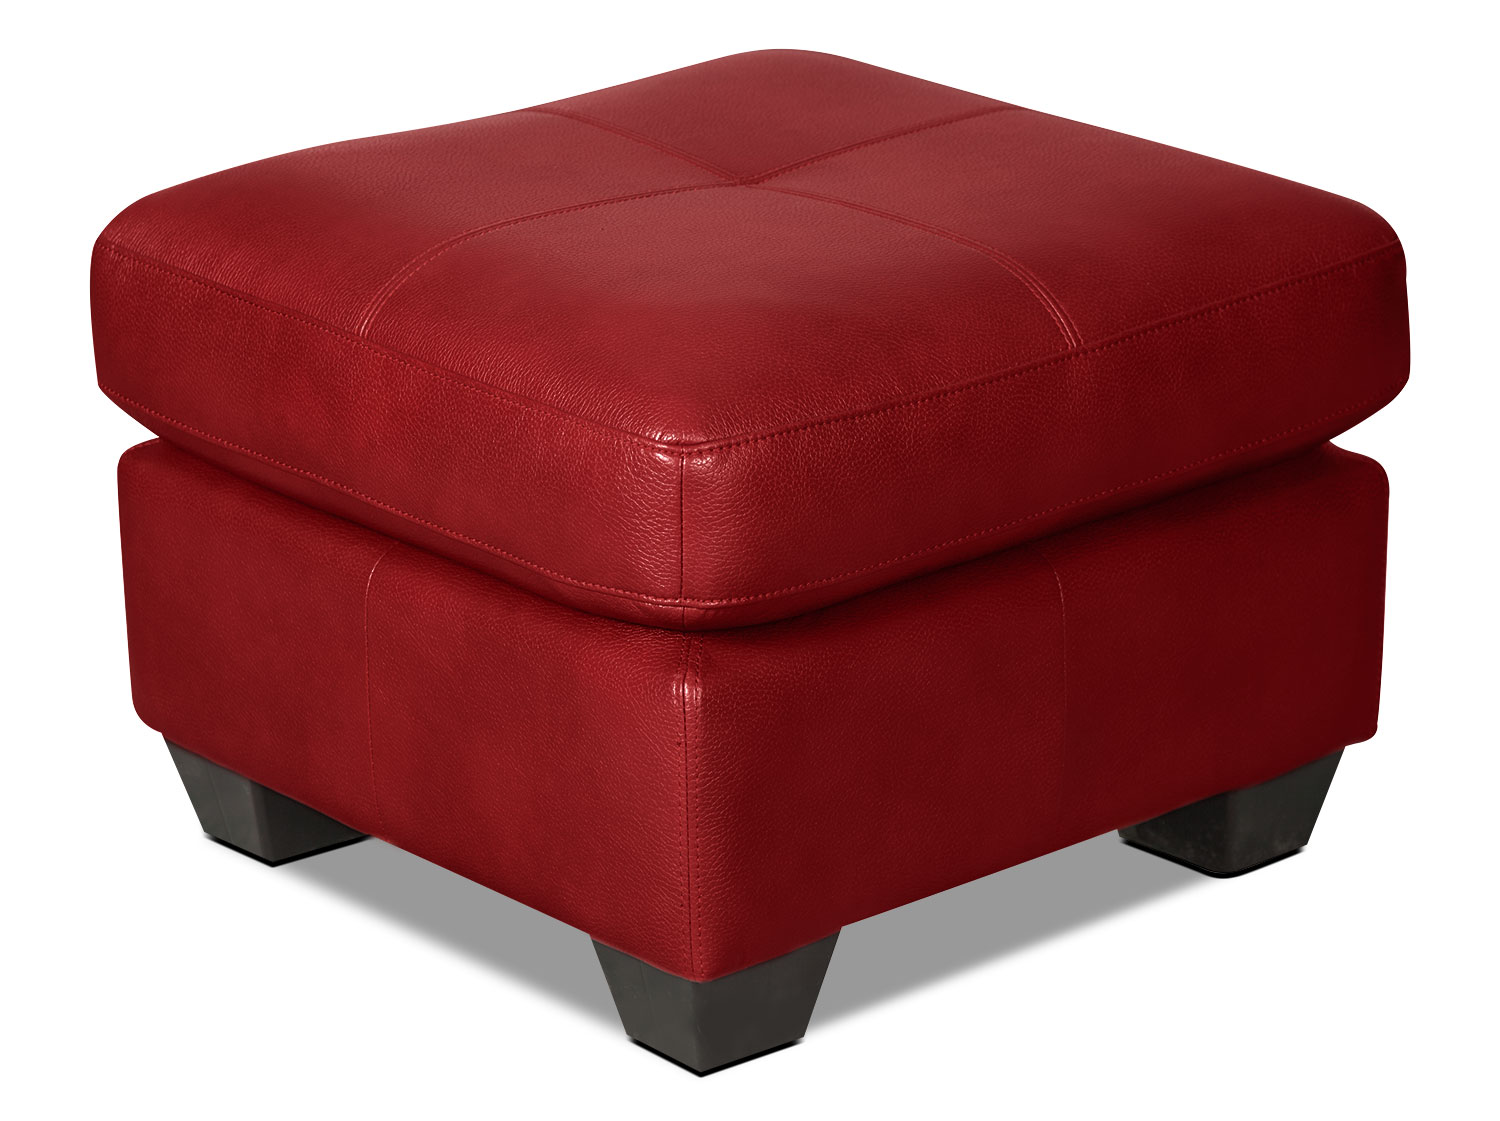 Costa Leather-Look Fabric Ottoman – Red